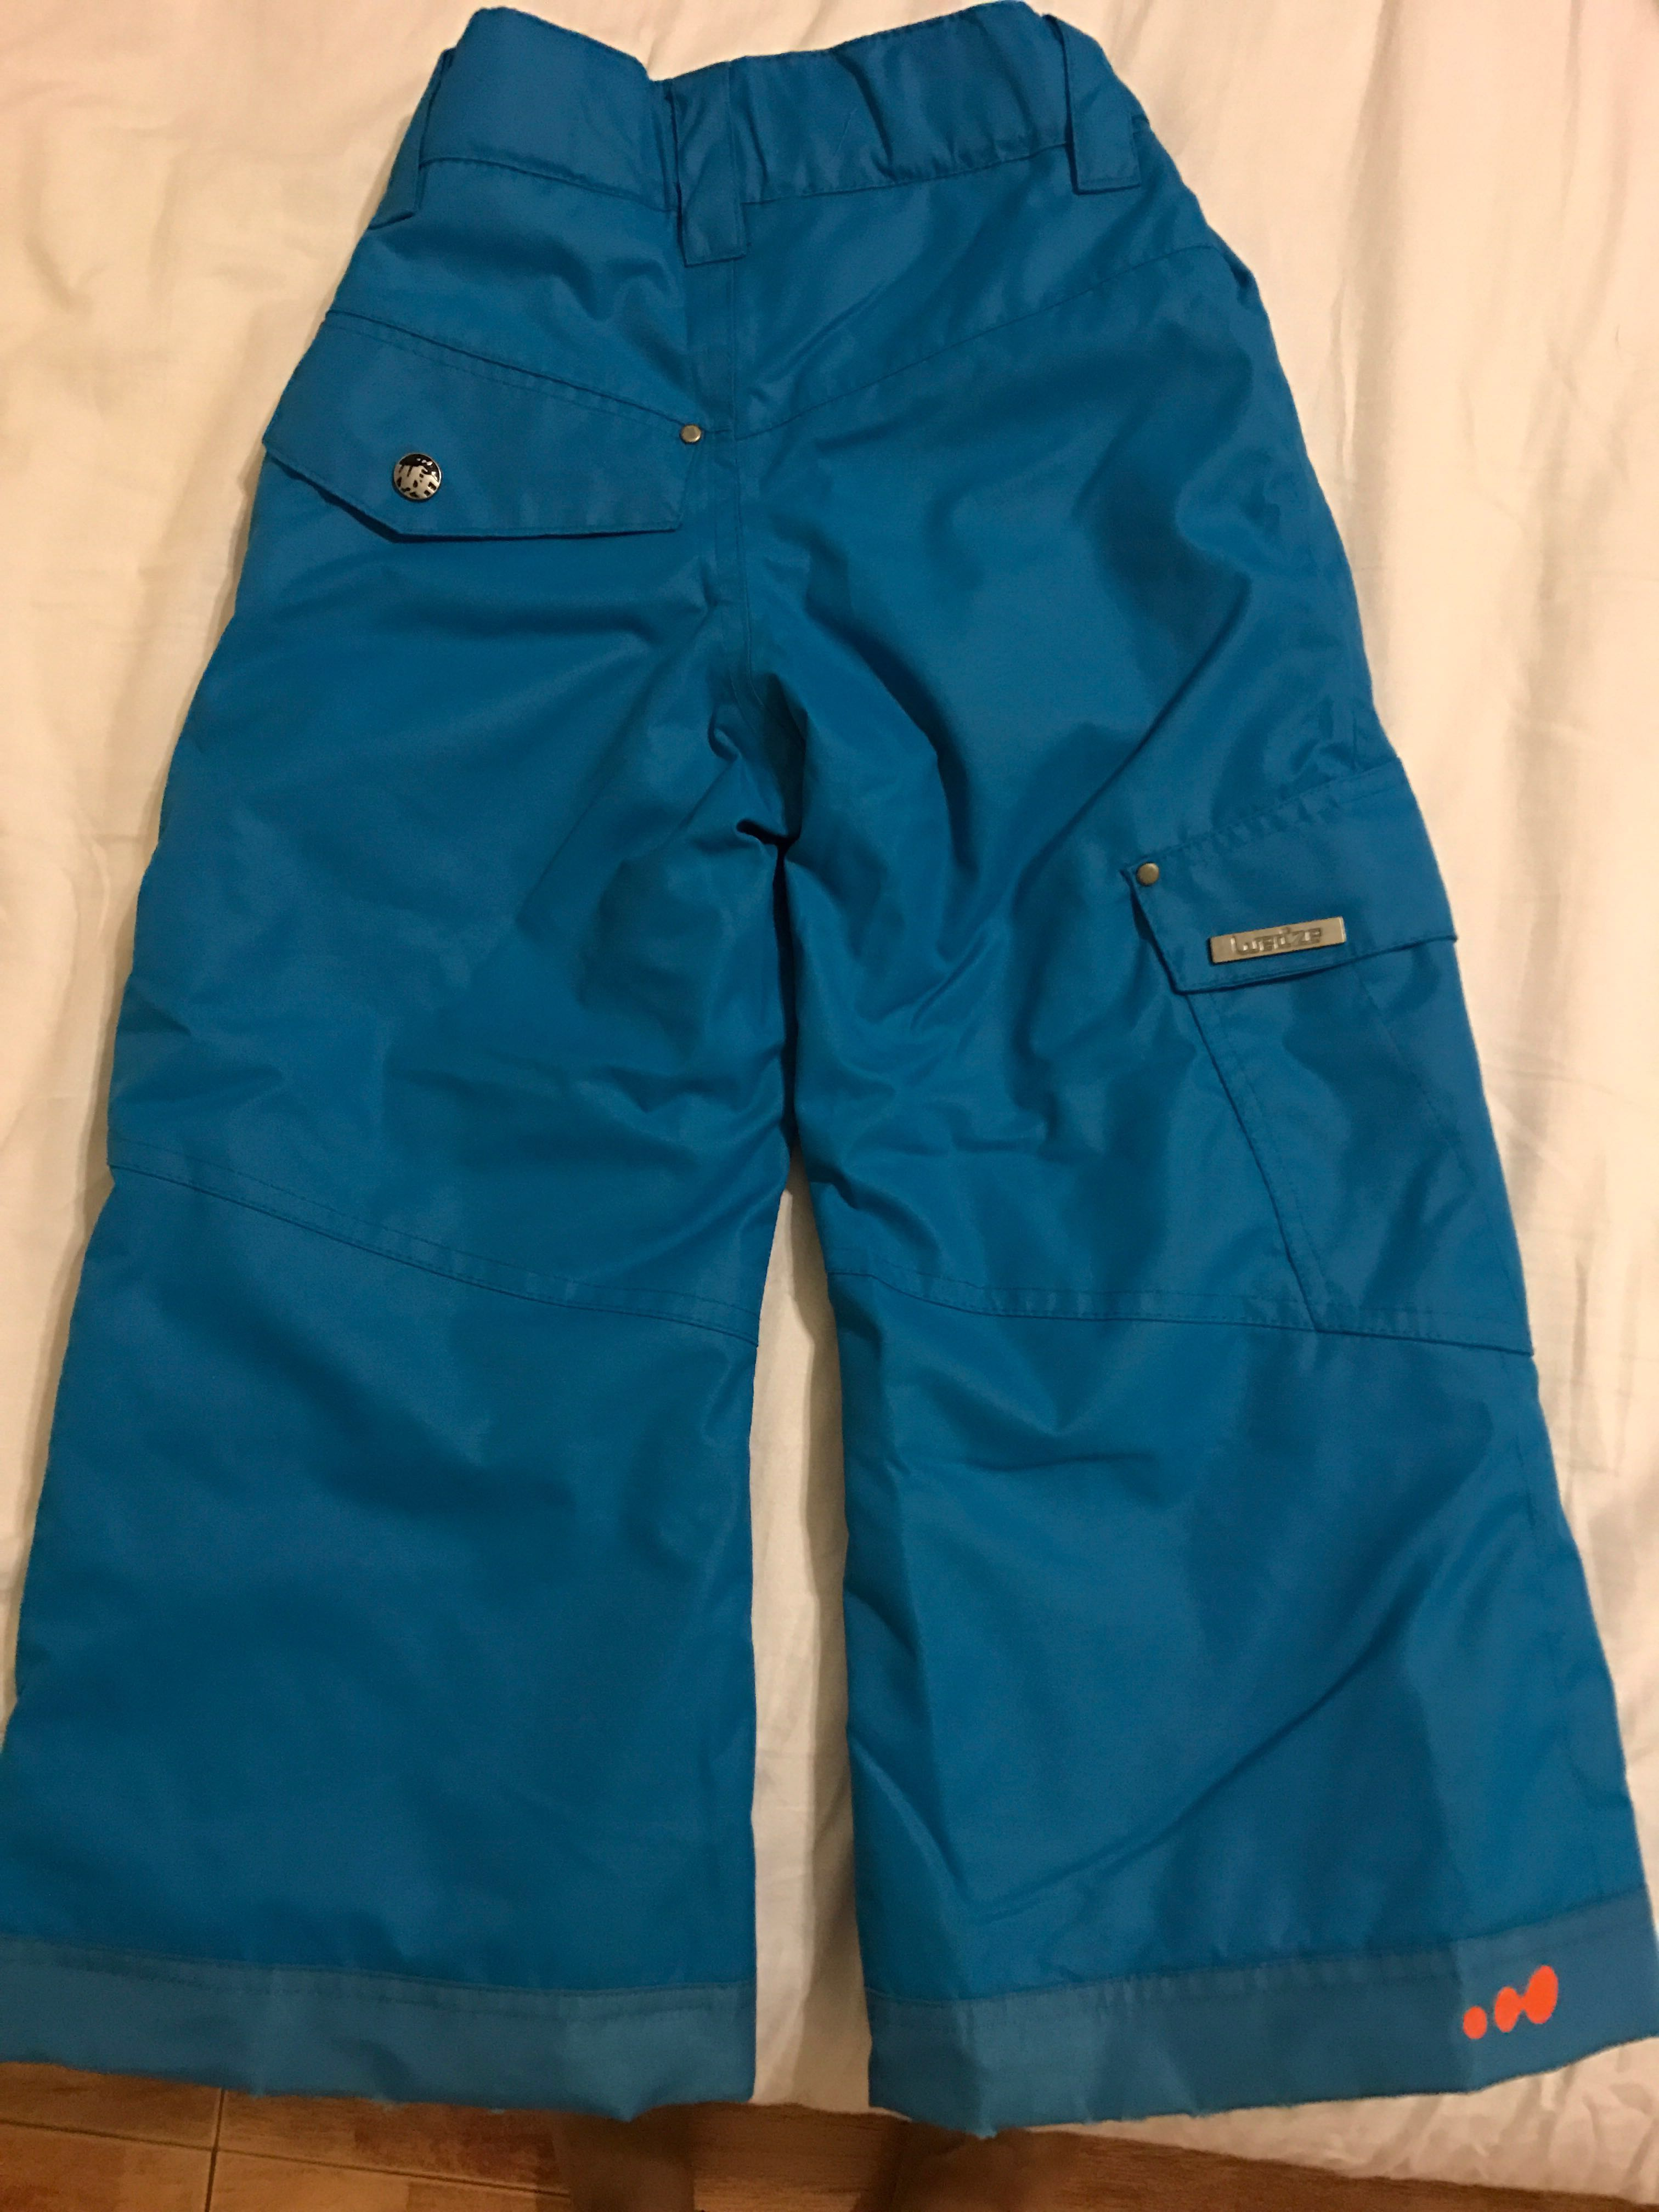 Baby Boy Lined Jeans Trousers Size 12 Months 74cm At All Costs